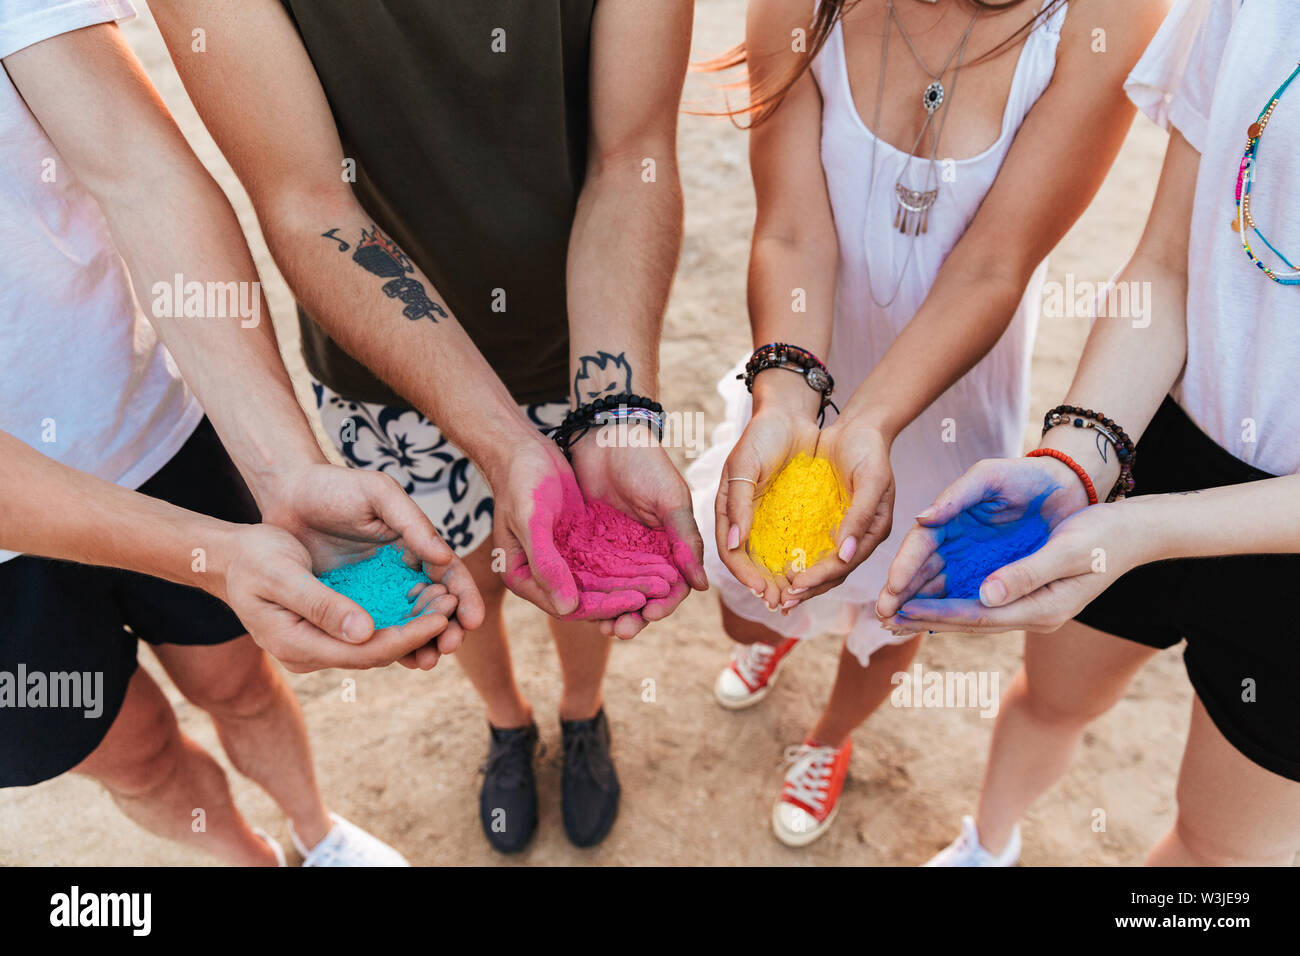 Group of a cheerful young friends having fun at the beach, showing hands with colorful holi paint - Stock Image